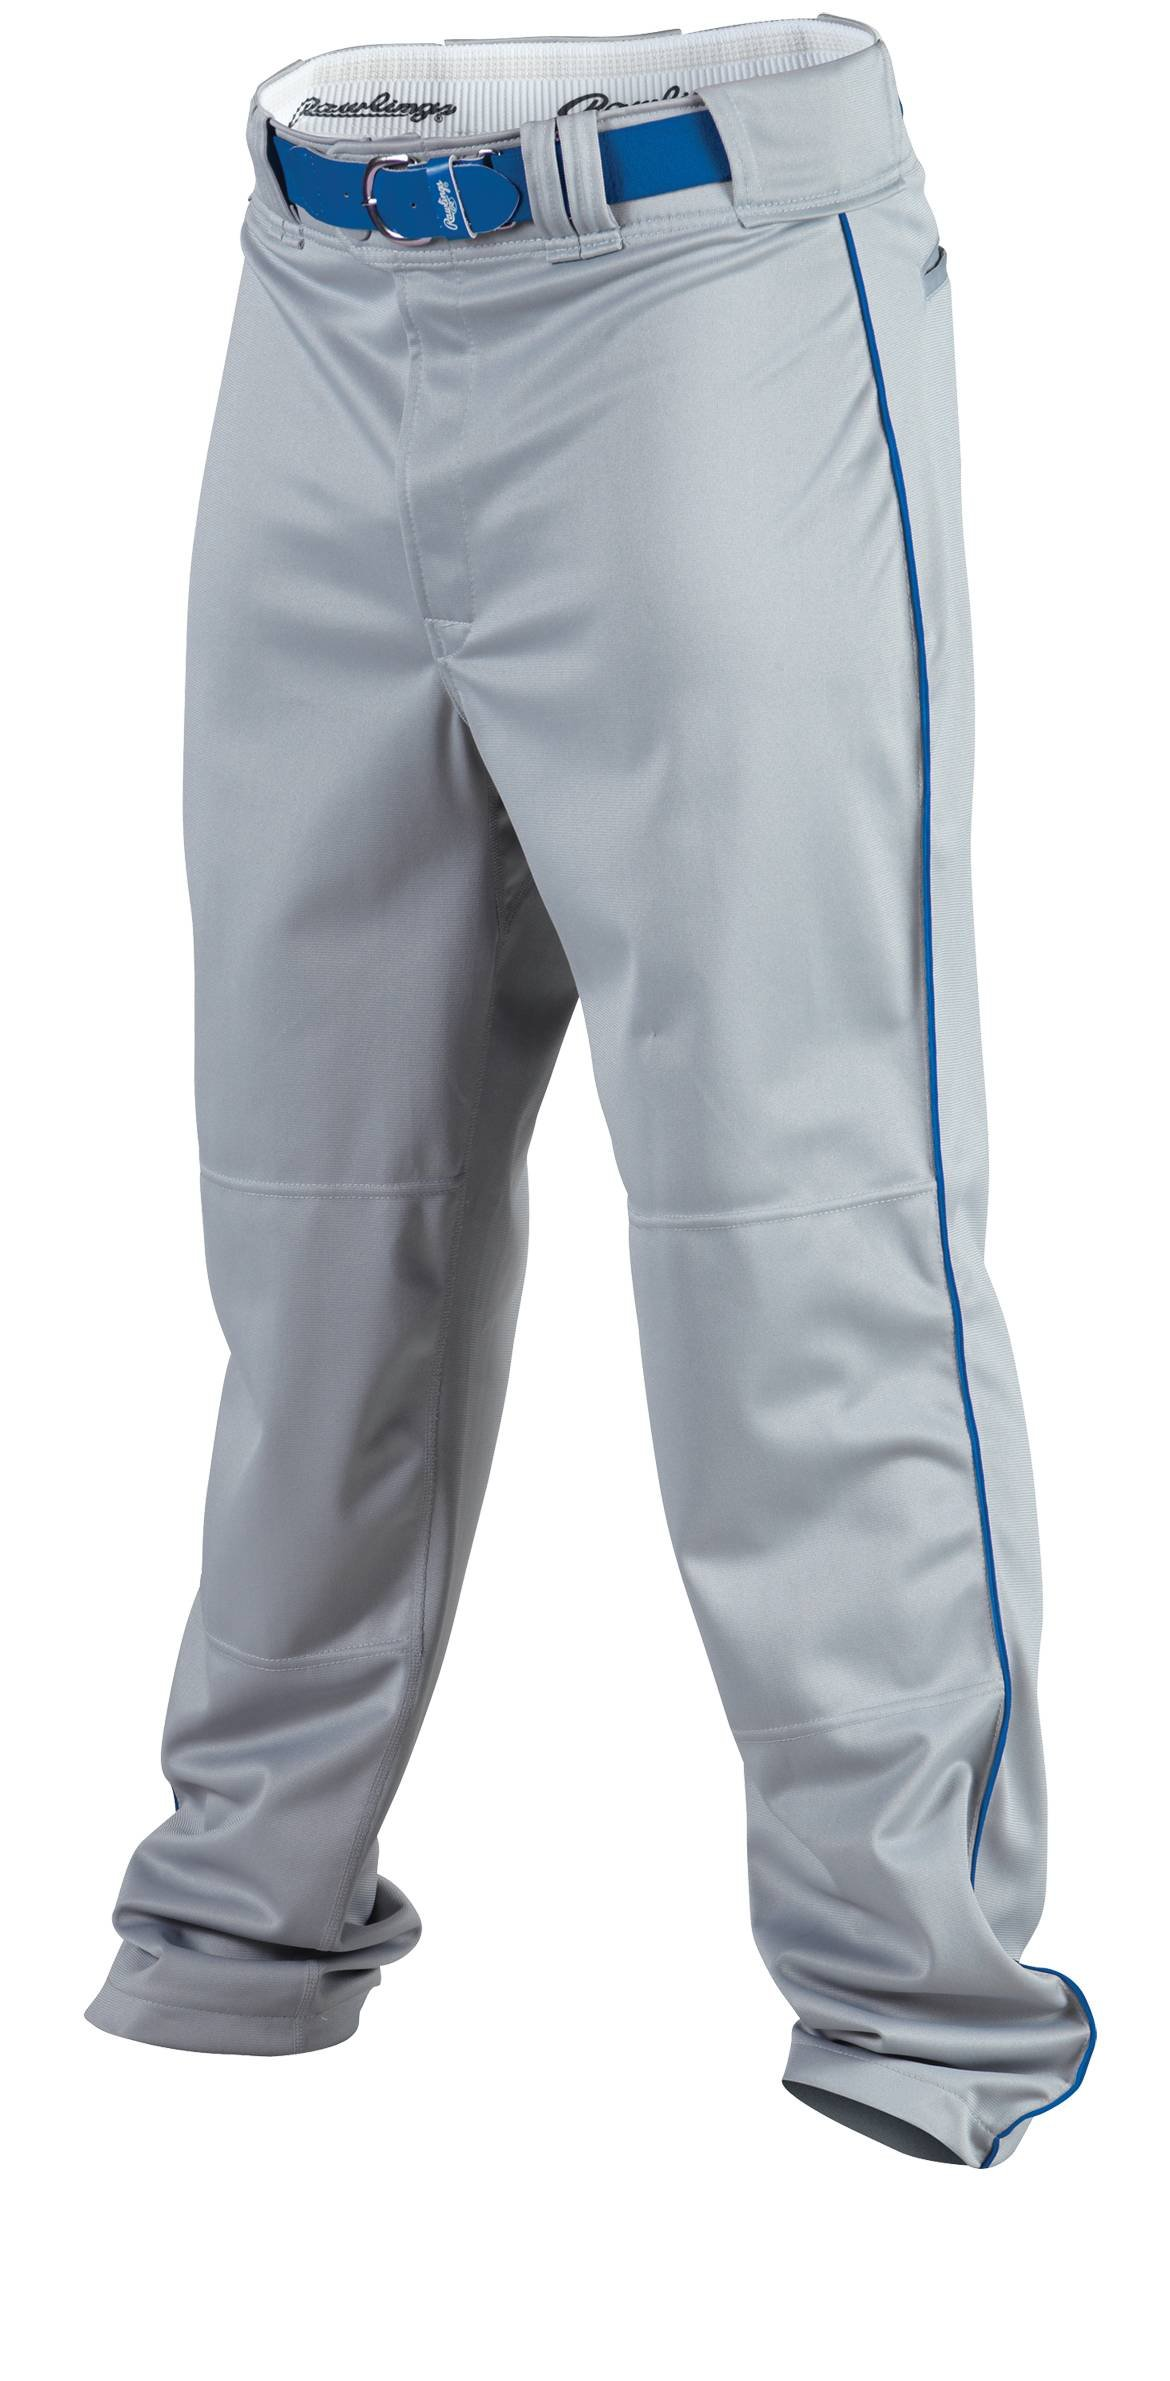 Rawlings Men's Baseball Pant (Blue Grey/Royal, Medium) by Rawlings